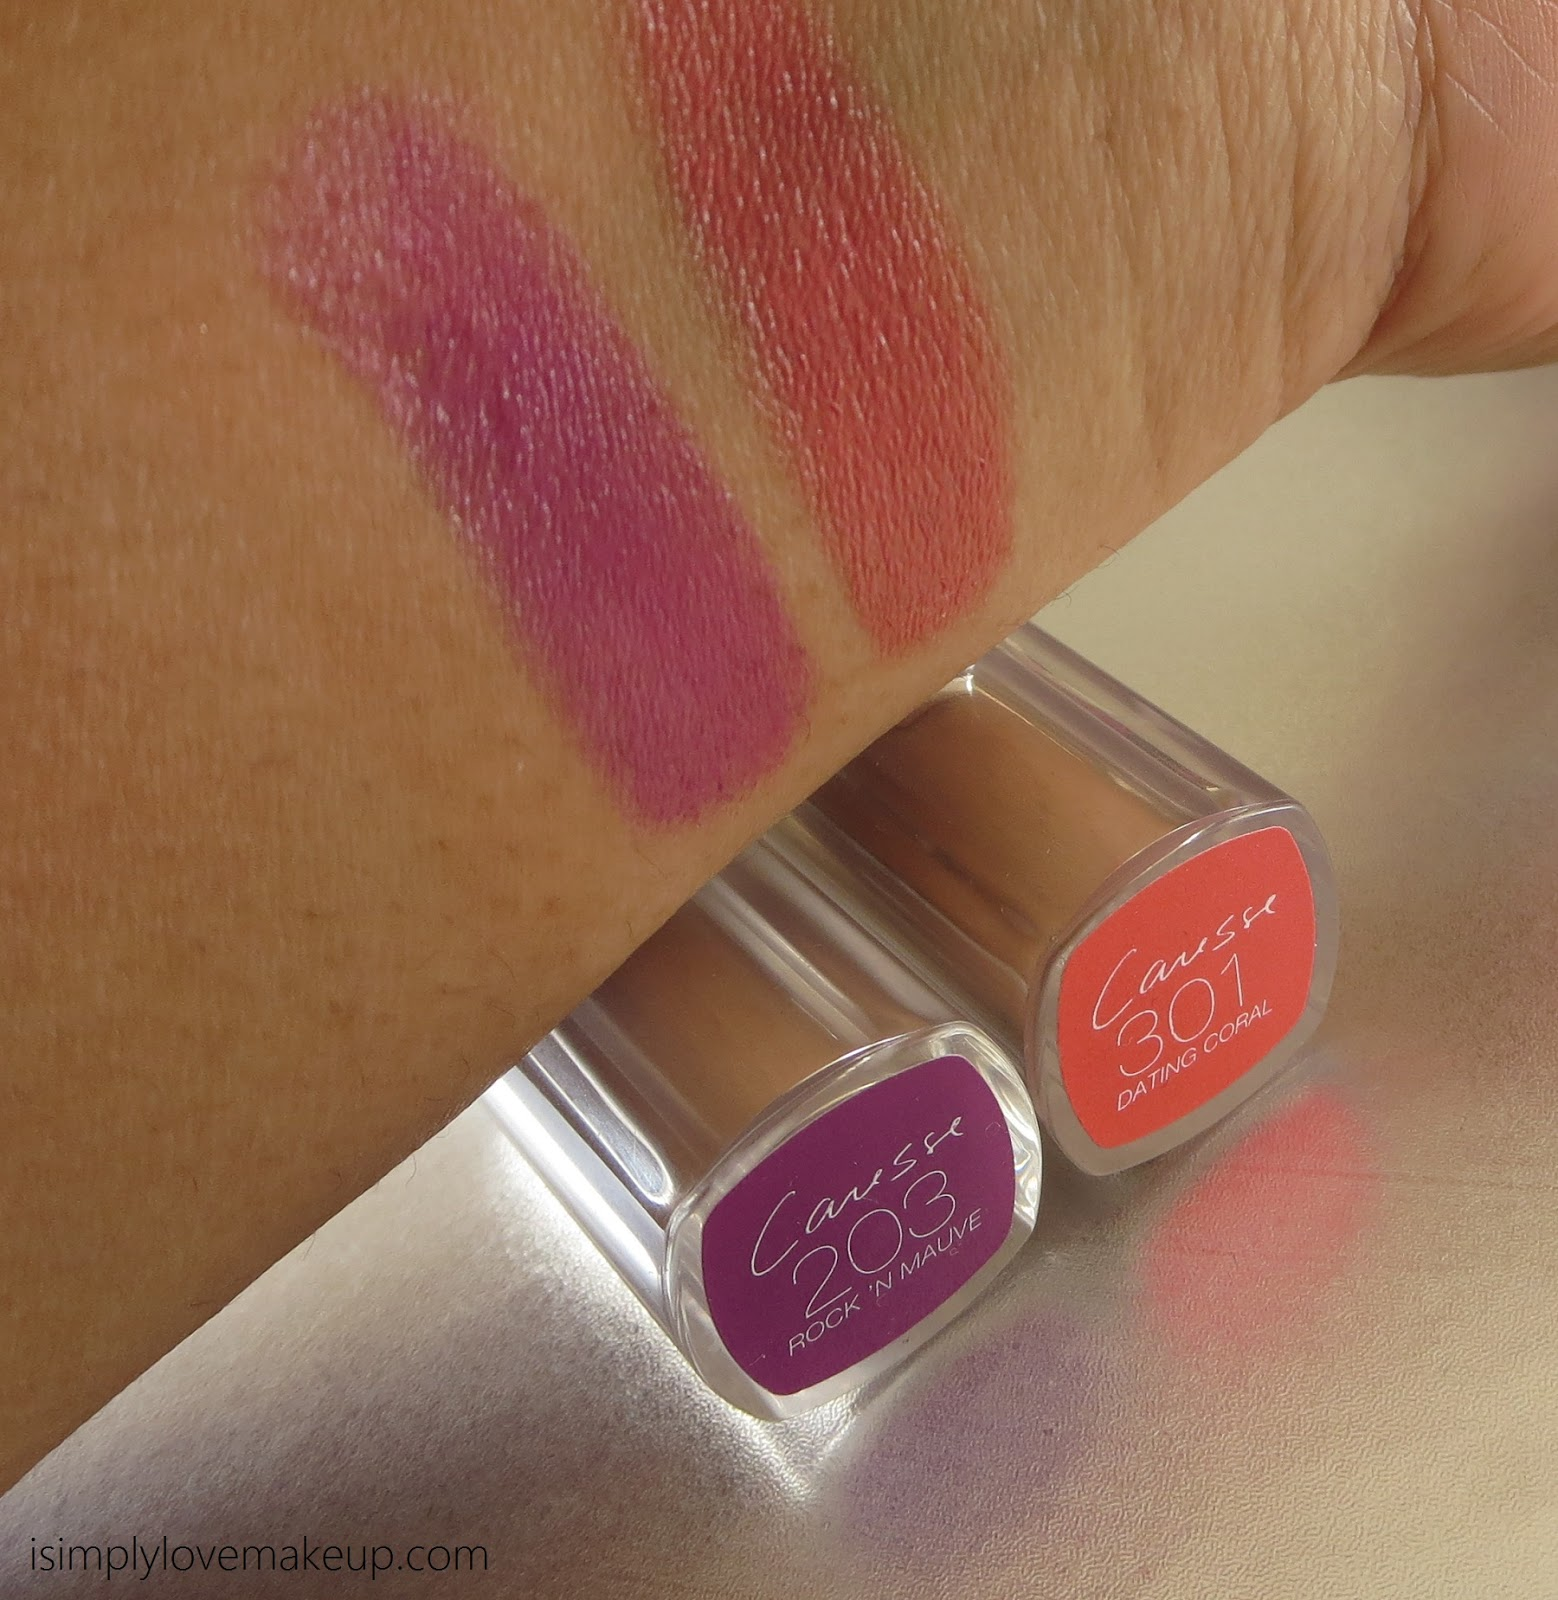 L'Oreal Paris Rouge Caresse Lipsticks - Review and Swatches